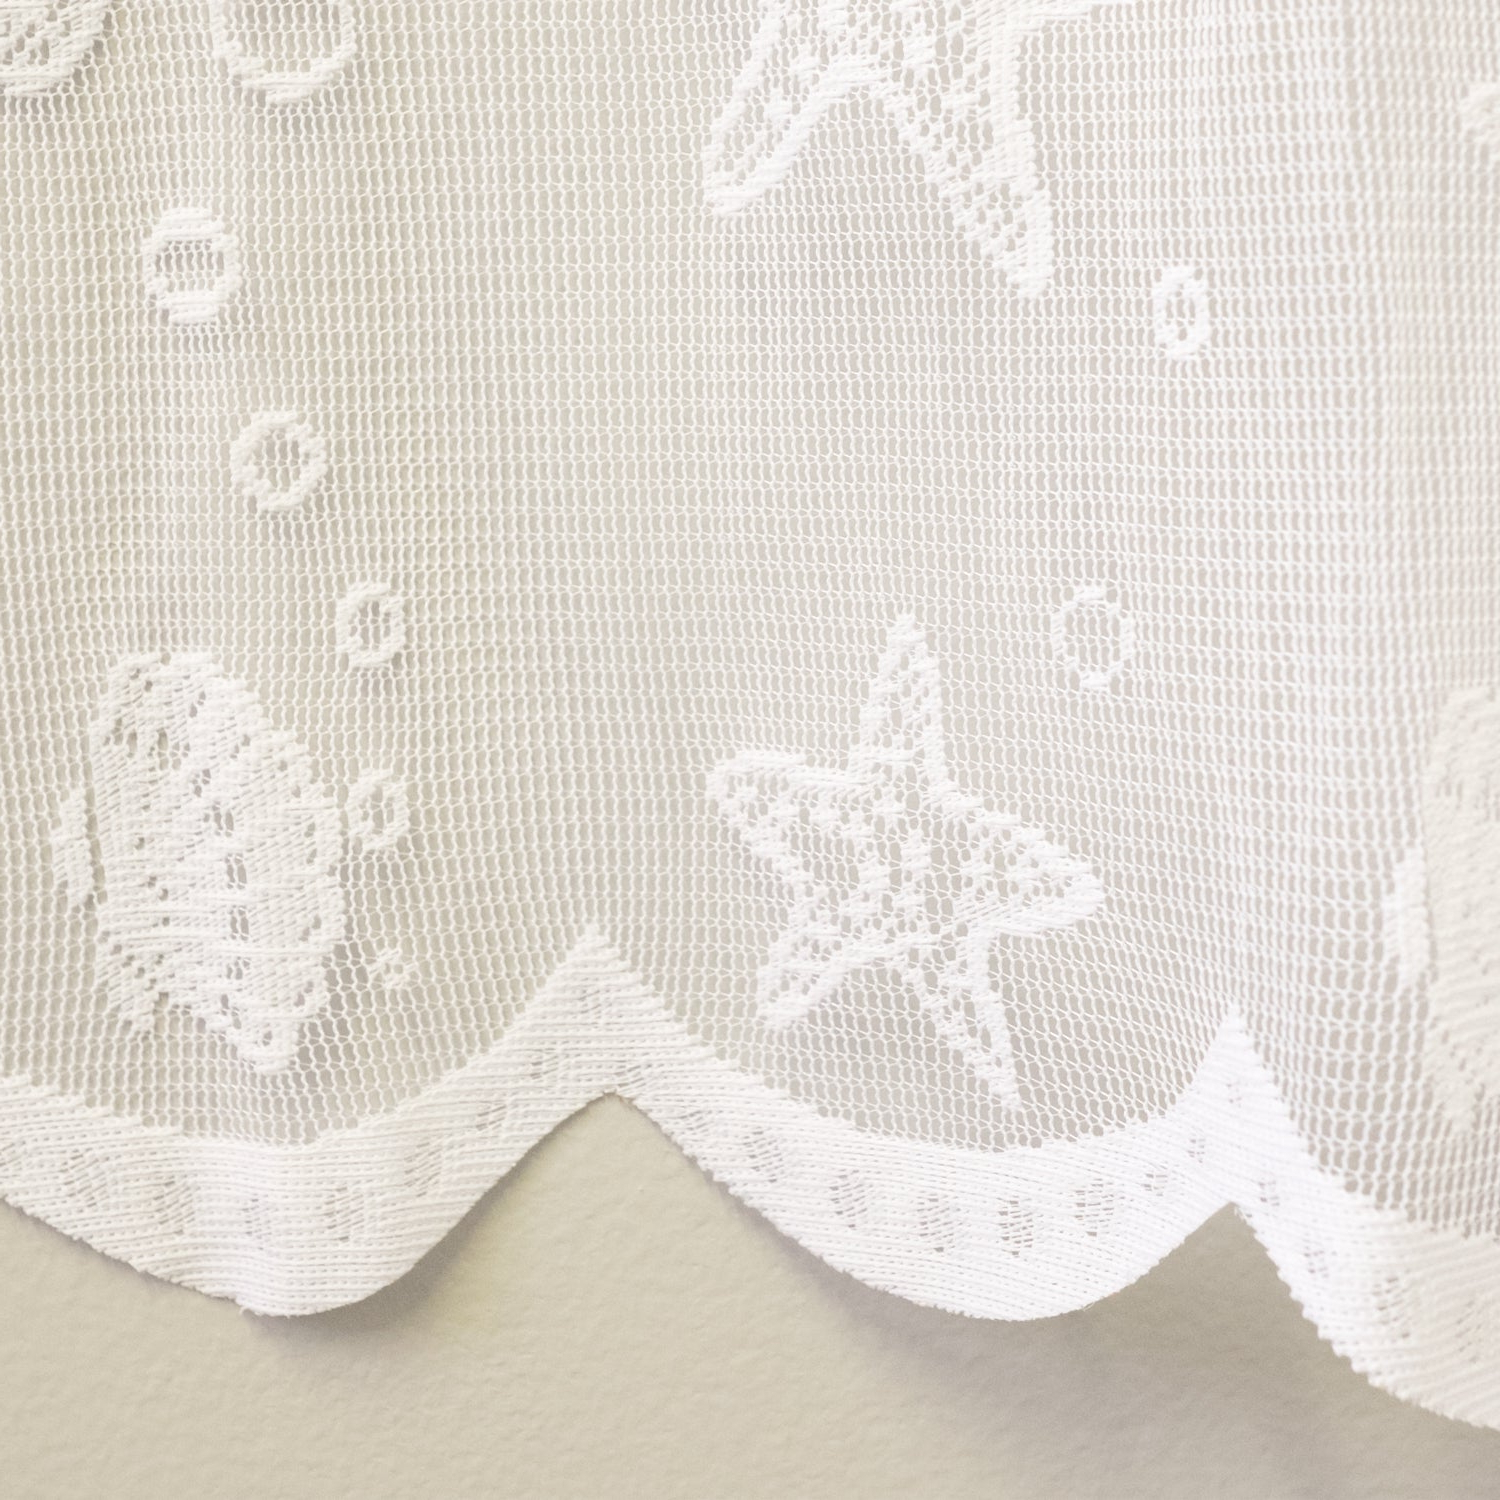 Preferred Marine Life Motif Knitted Lace Window Curtain Pieces With Marine Life Motif Knitted Lace Window Curtain Panel (View 7 of 20)